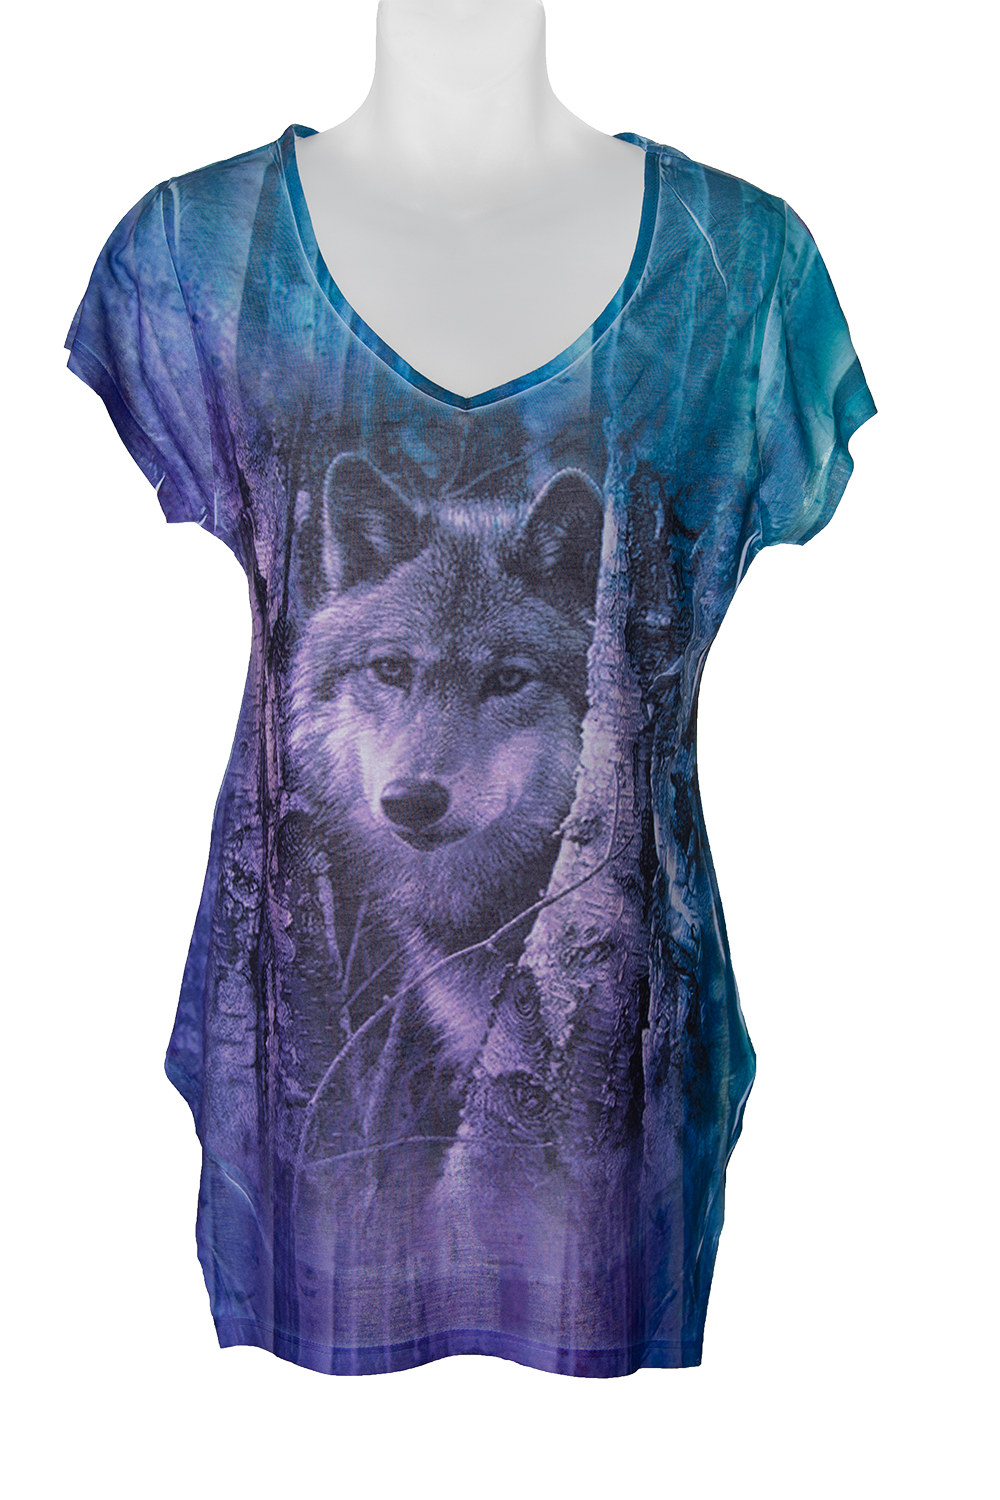 Waiting Wolf Women's Fashion T-shirt- multicolour t-shirt with art of a wolf in the trees sublimated on the front and back